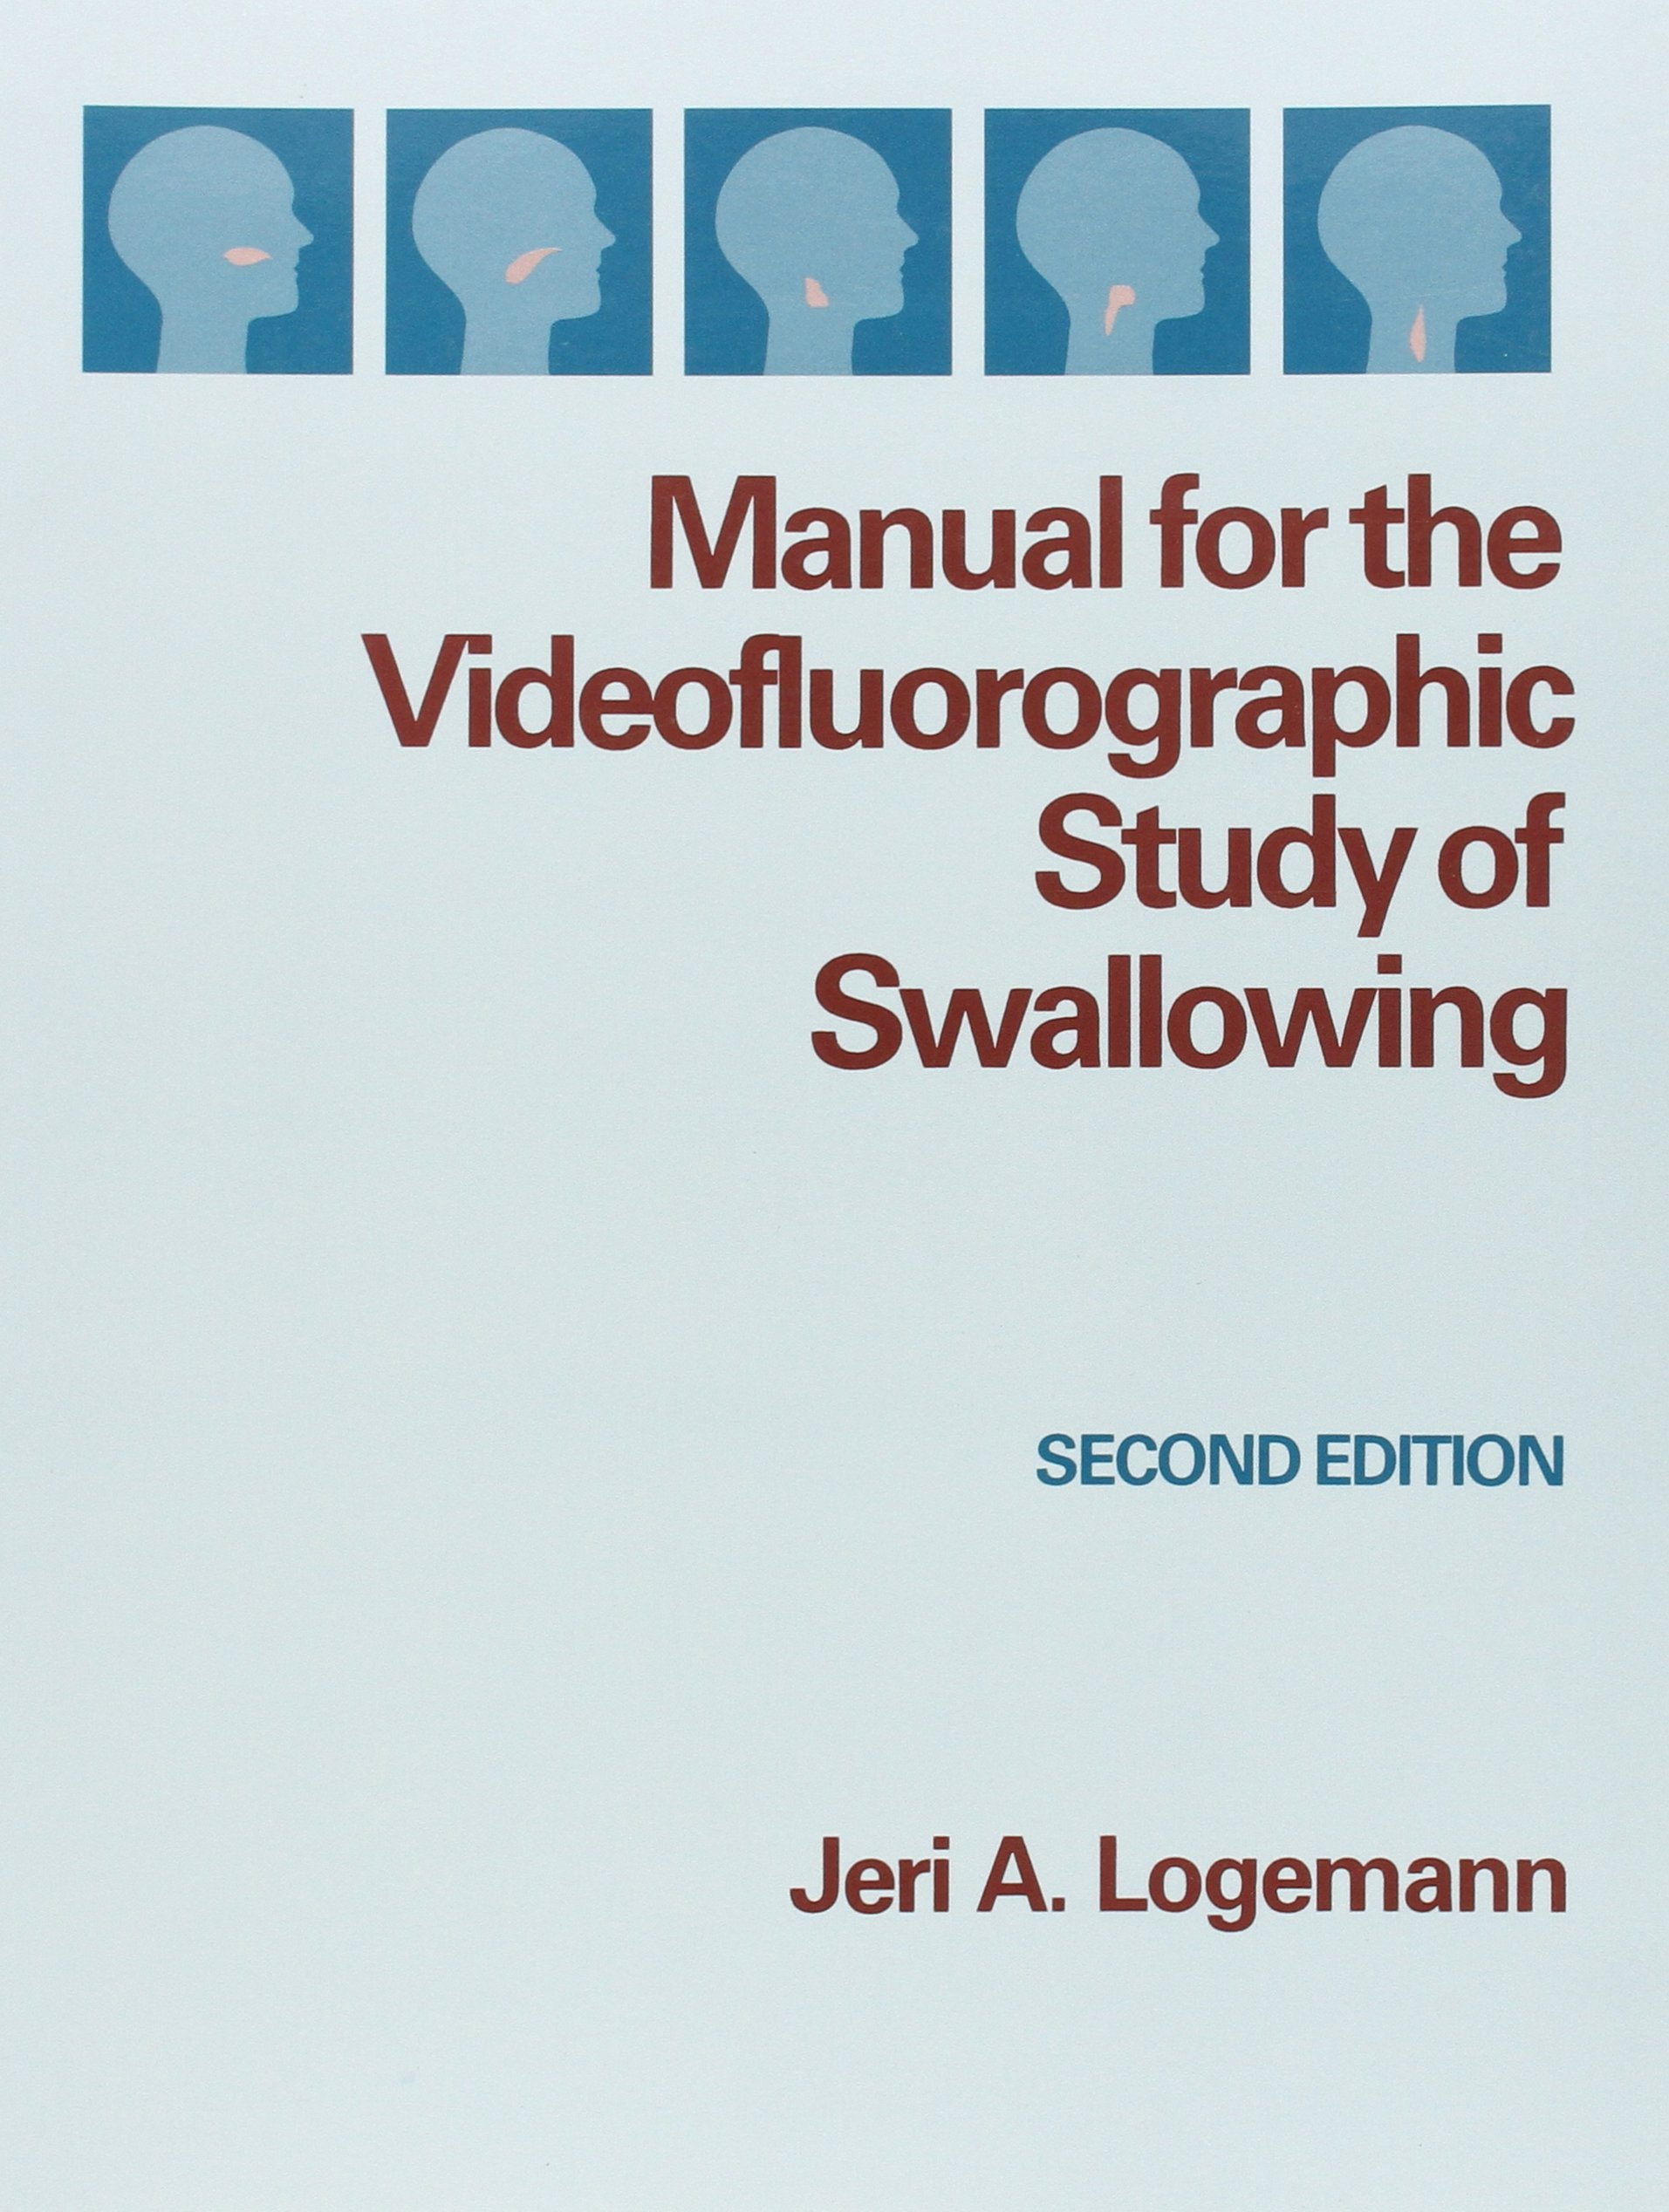 Manual for the Videofluorographic Study of Swallowing: Amazon.co.uk: Jeri  A. Logemann: 9780890795842: Books